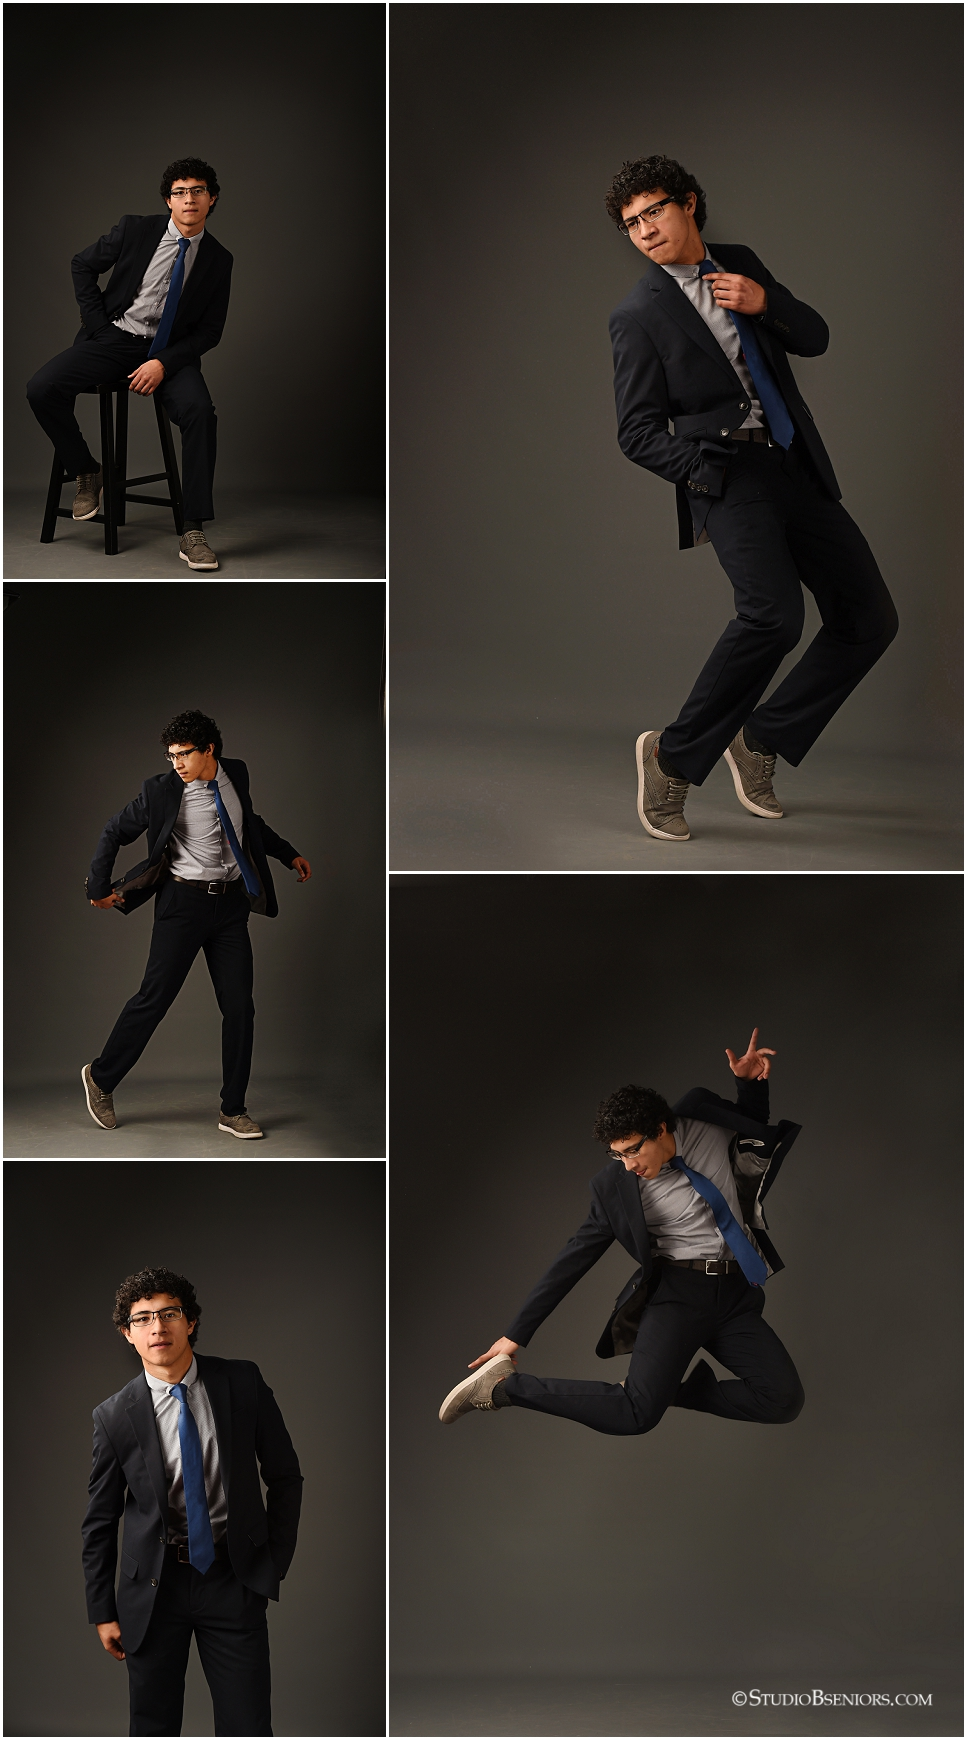 01_Senior pictures of boy dancing and leaping in the a suit and tie at Studio B Portraits_0230